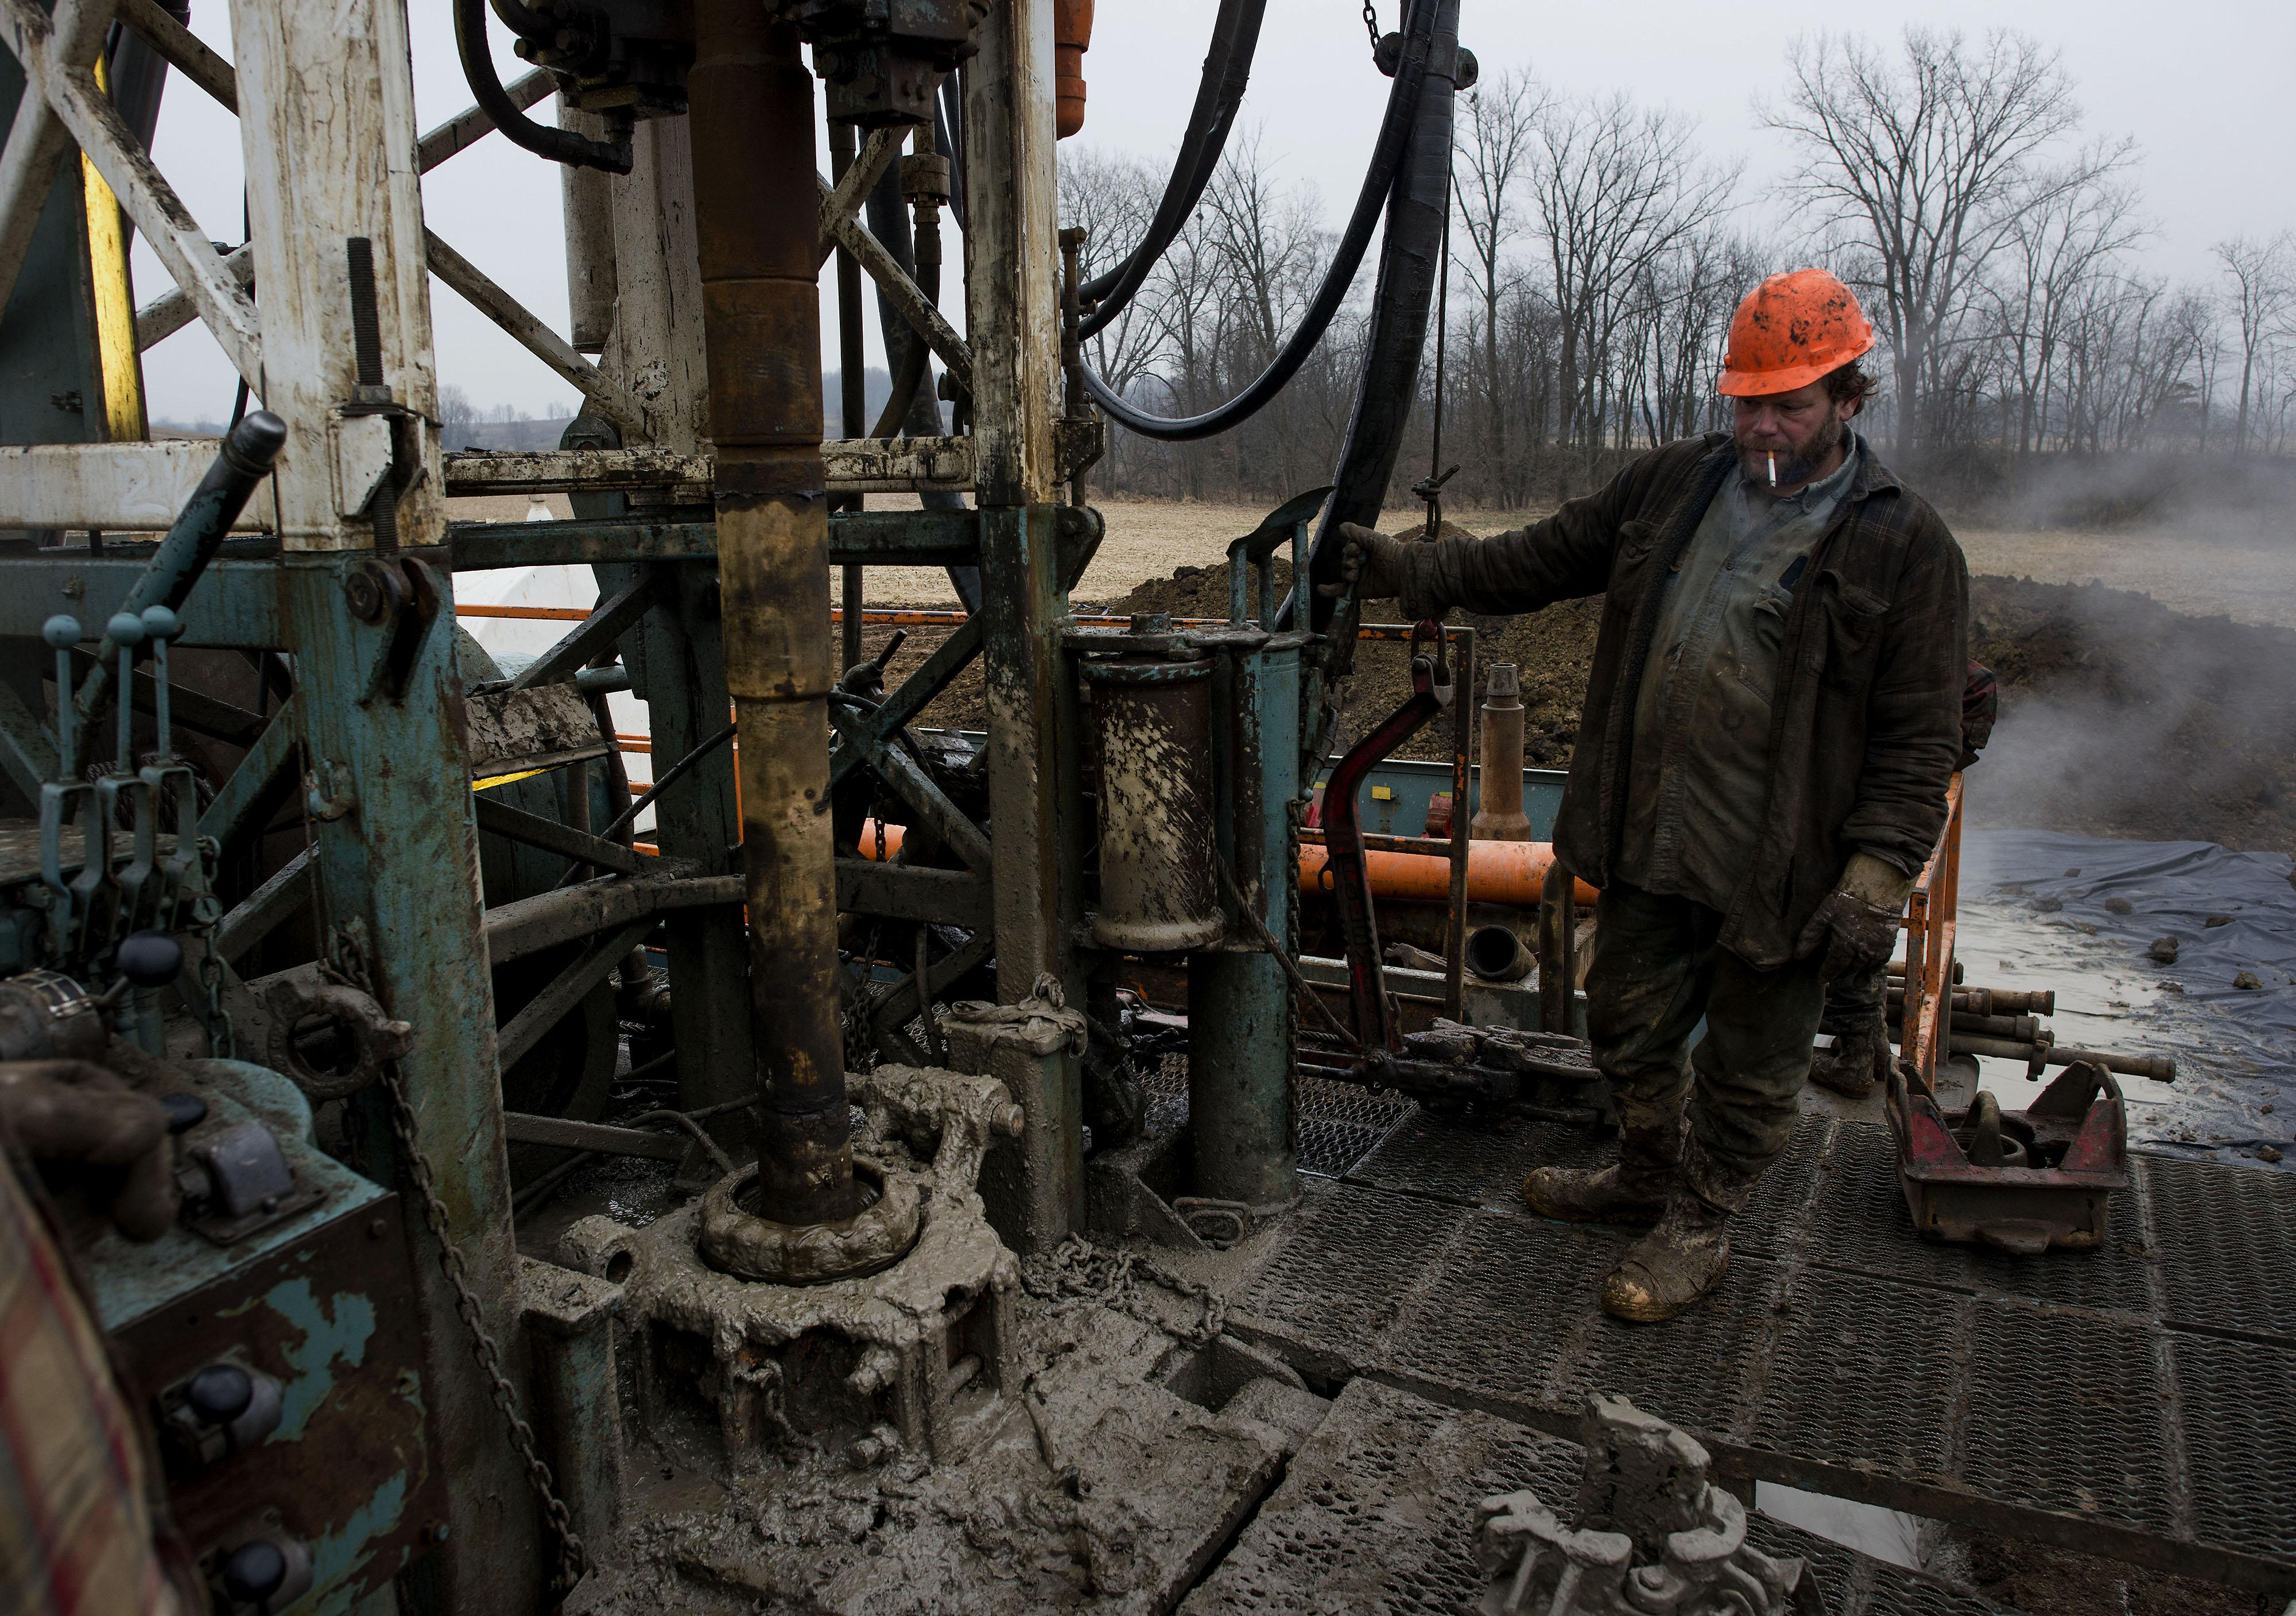 Ohio Fracking Oil Rig